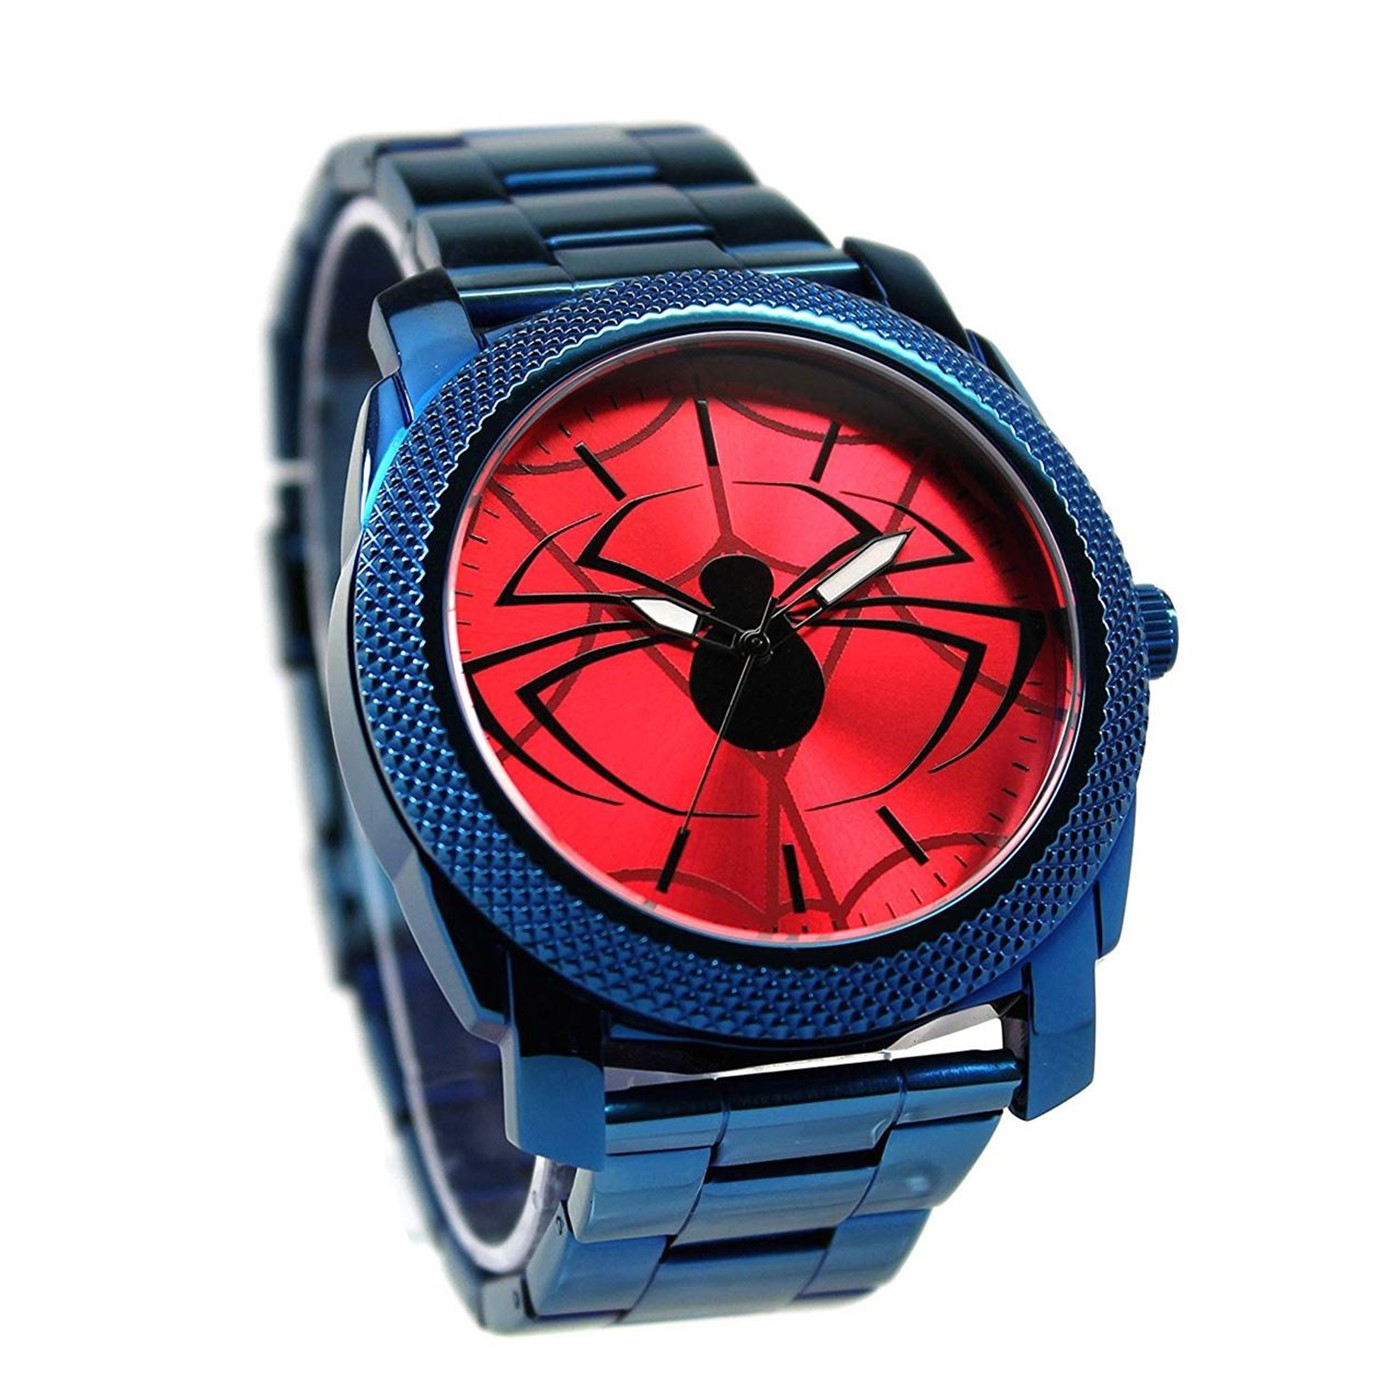 Spider-Man Stainless Steel Men's Watch